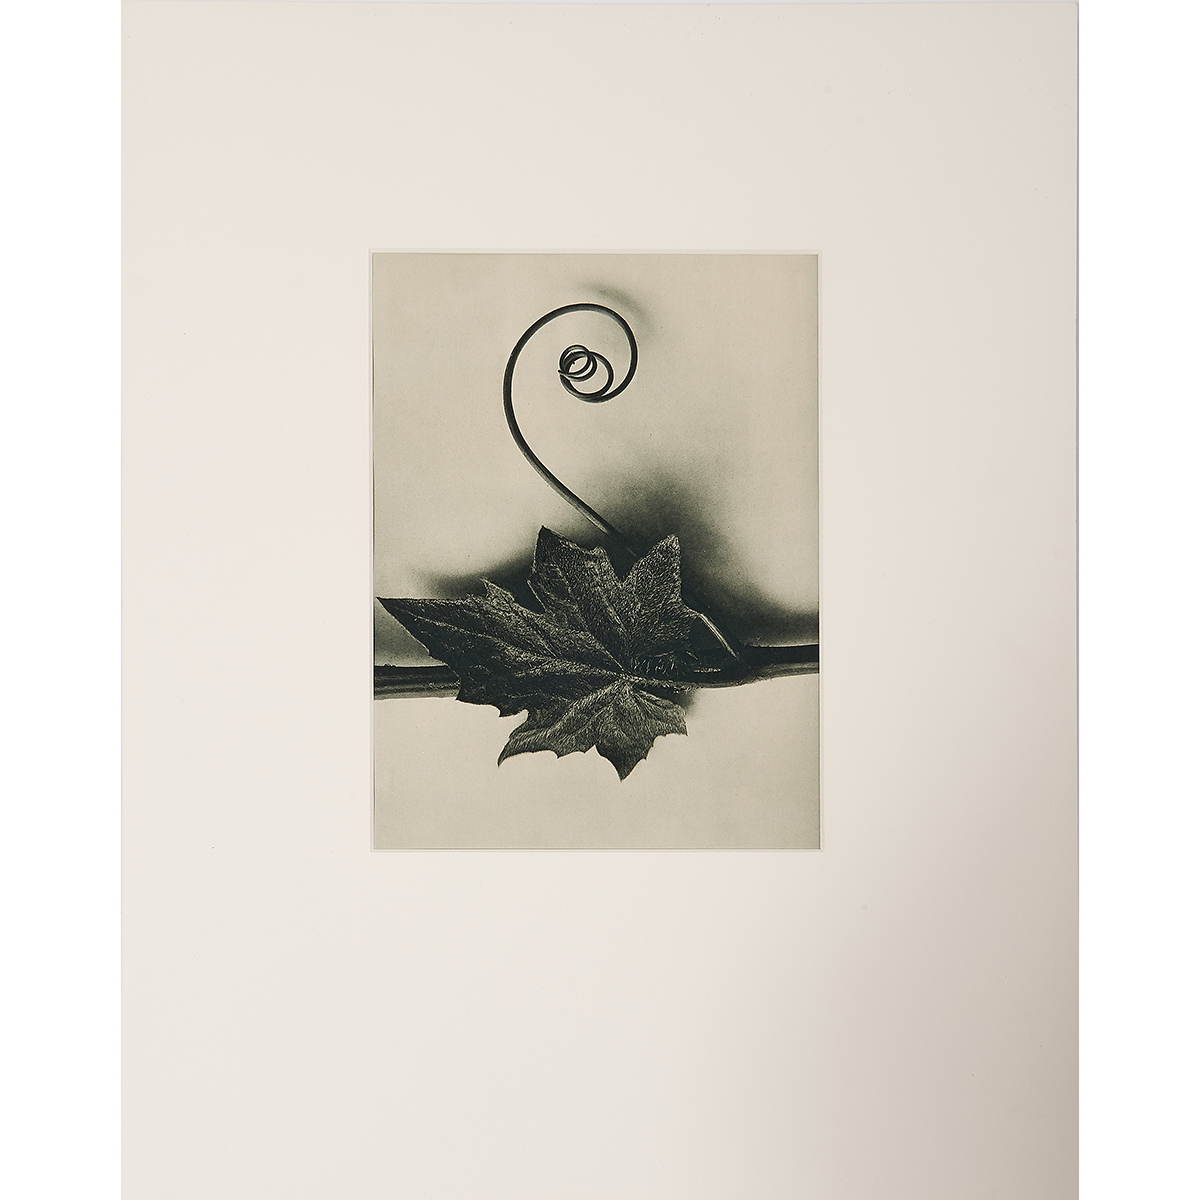 "Karl Blossfeldt, (German, 1865-1932), Untitled, photogravure on book page 49, 10"" x 7 1/2"""